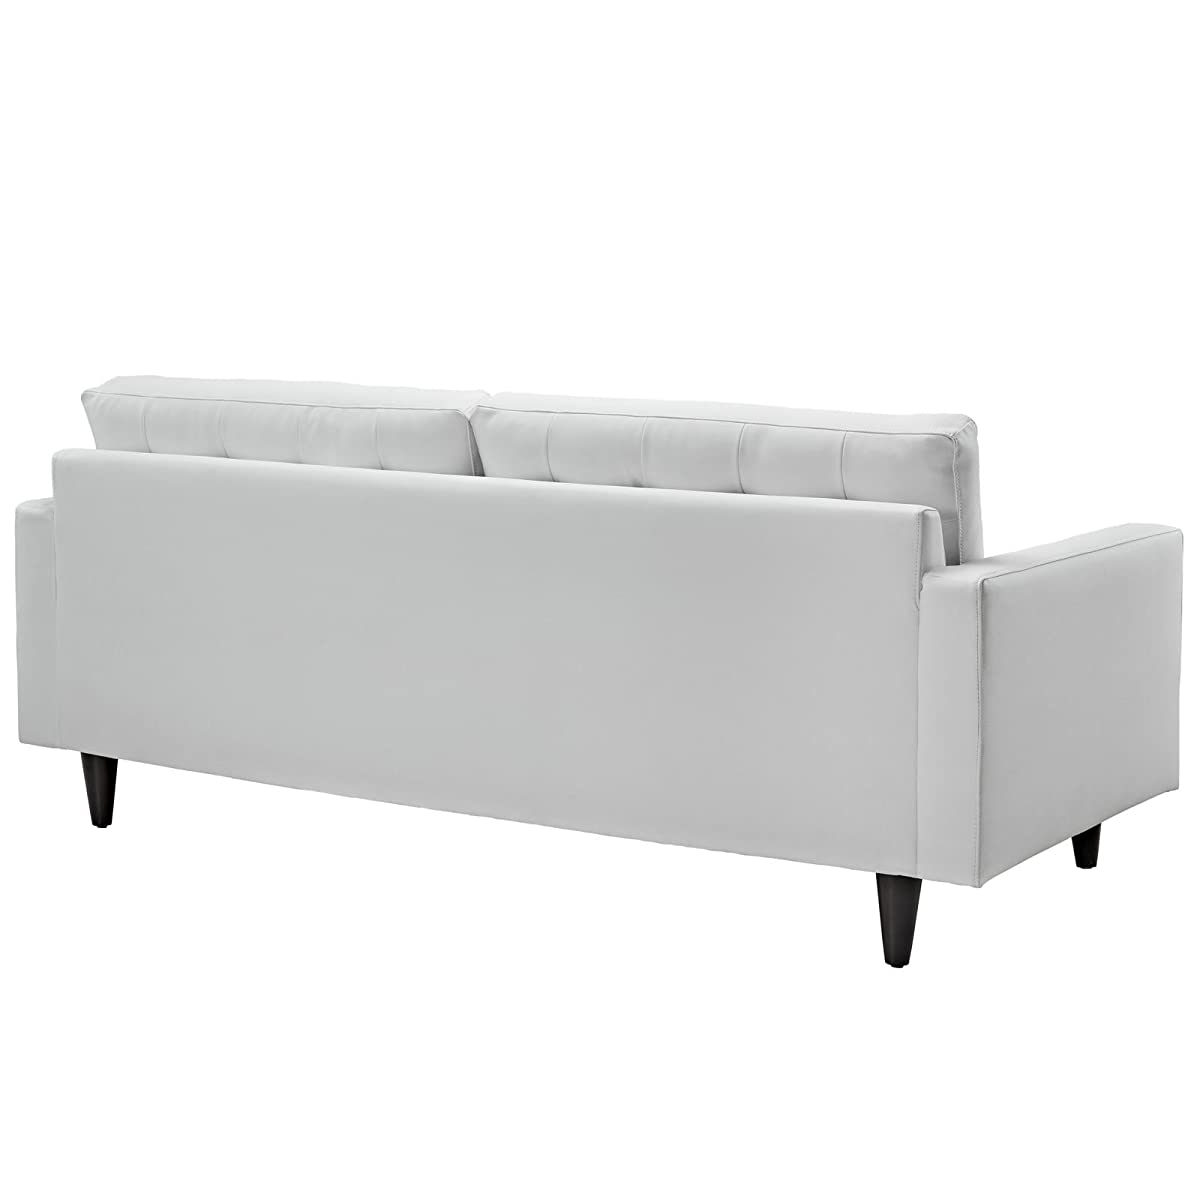 Modway Empress Mid-Century Modern Upholstered Leather Sofa In White